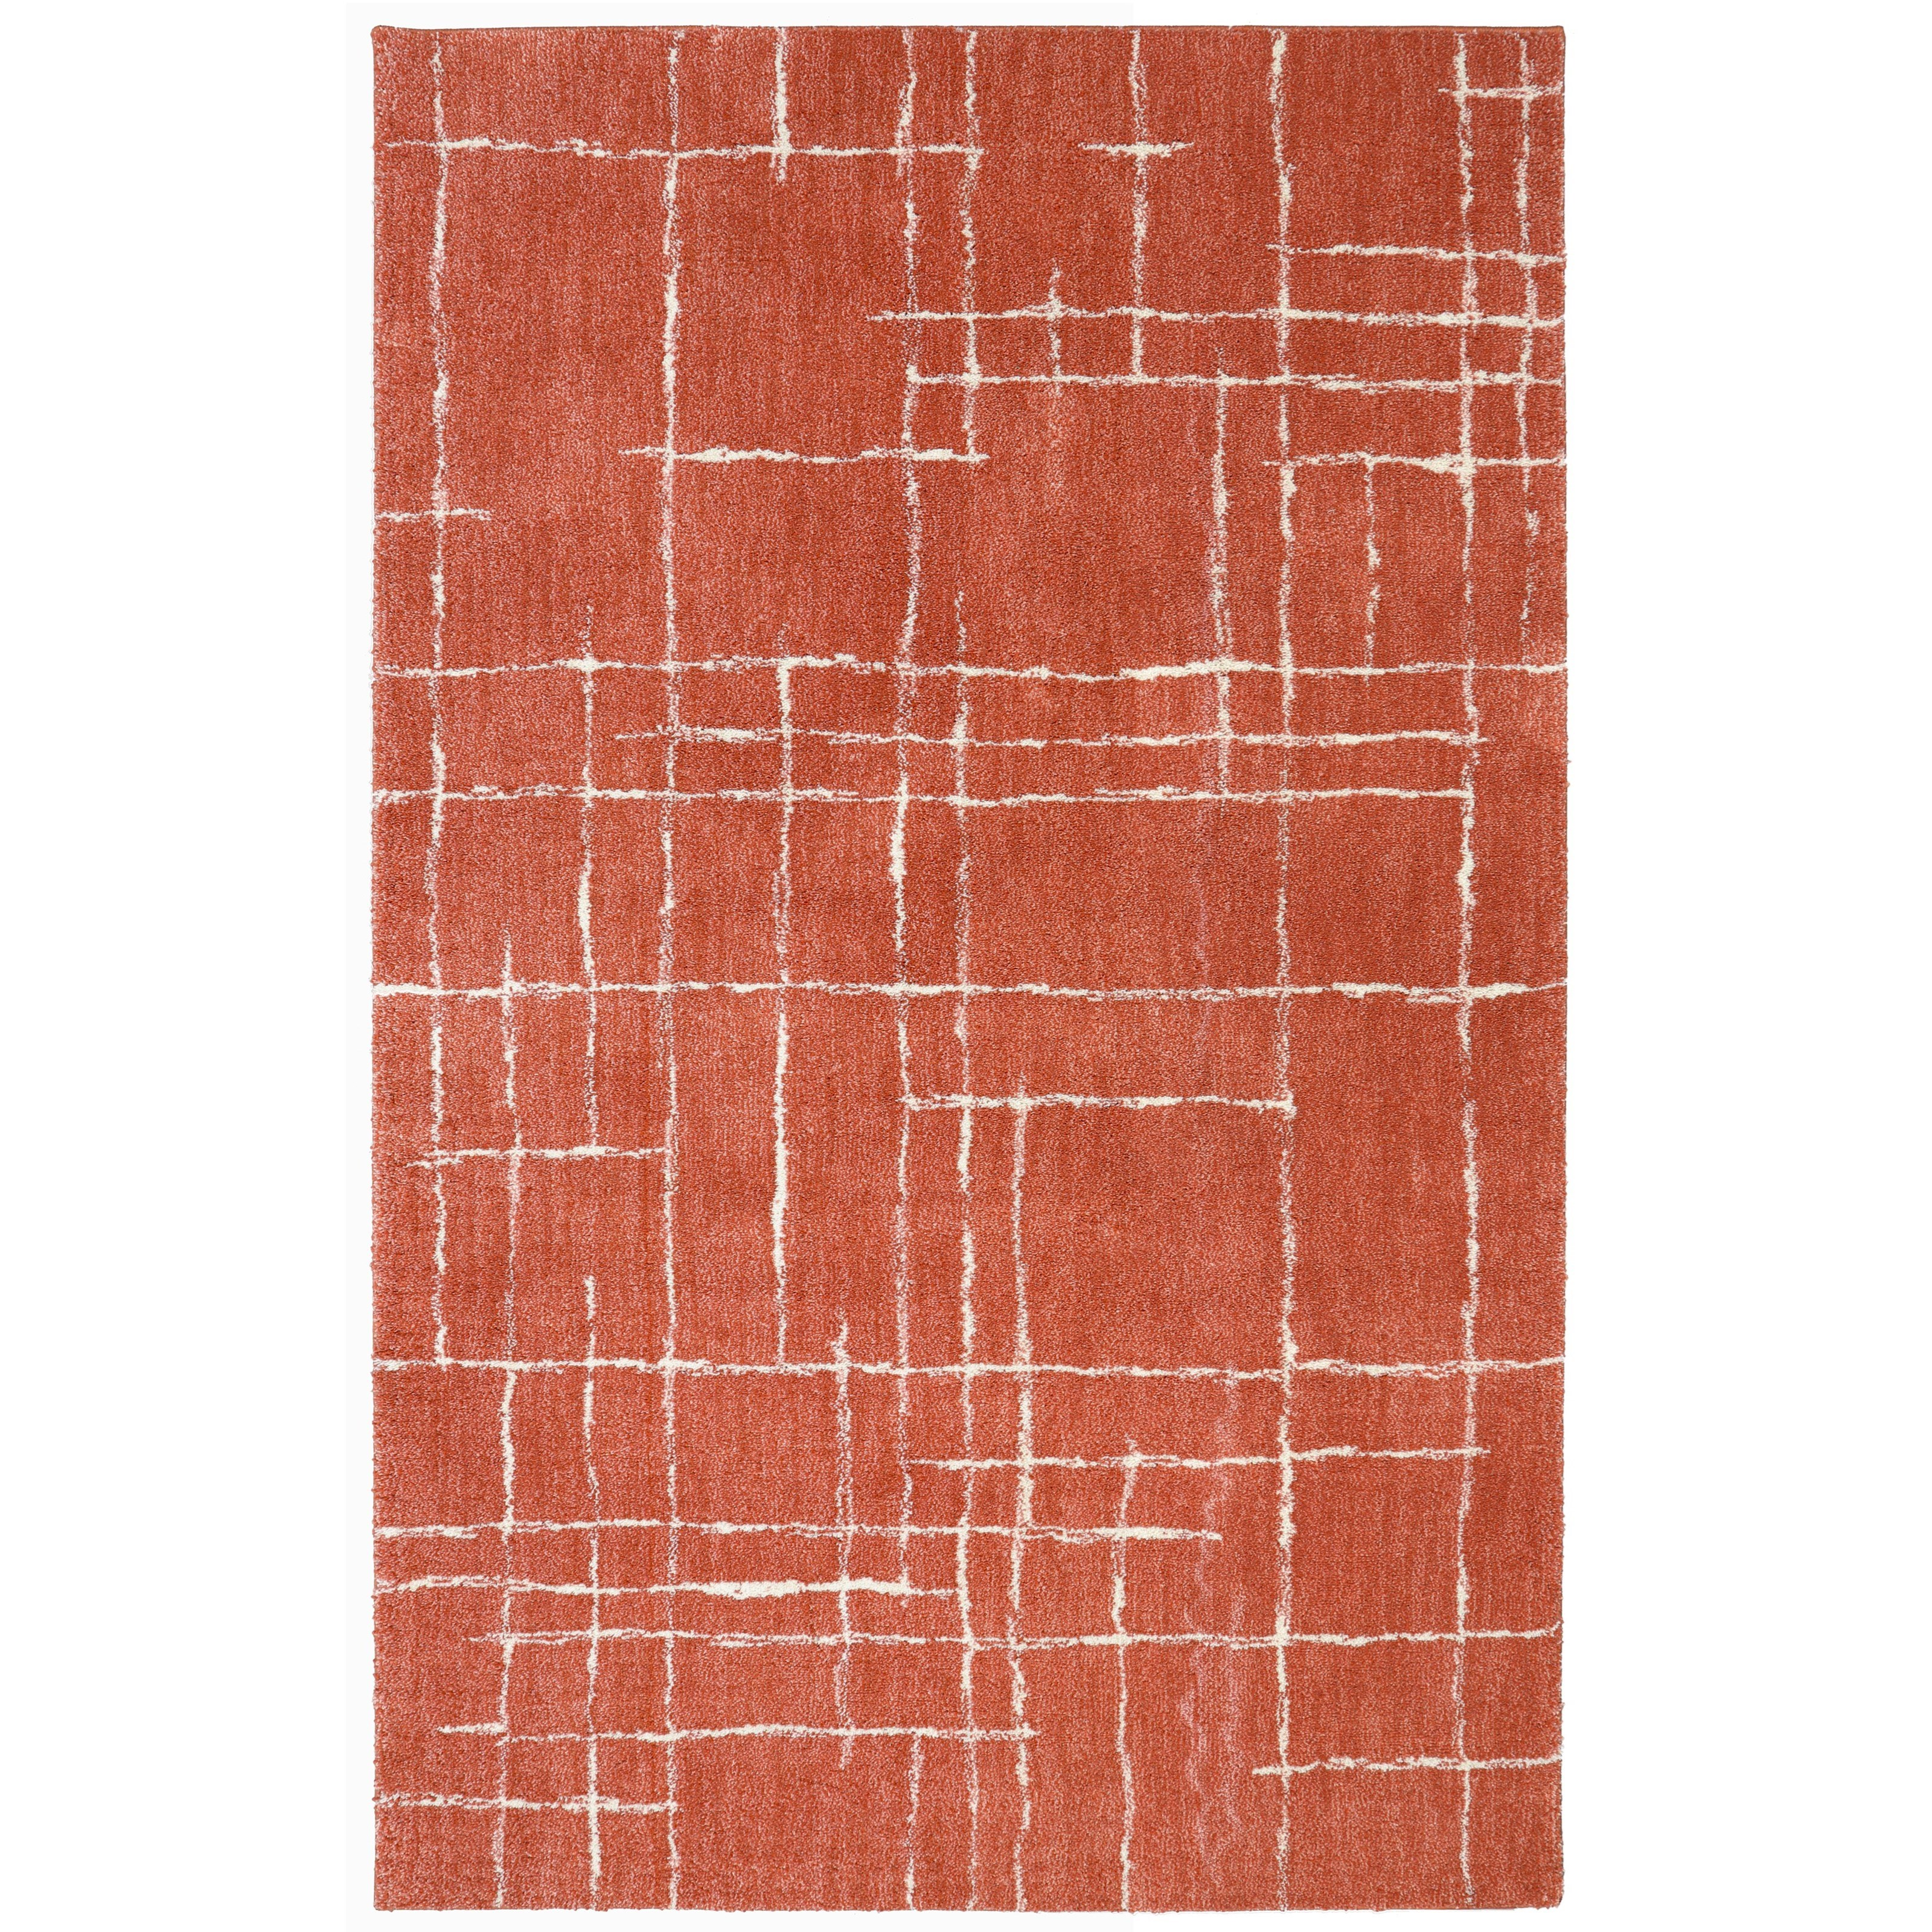 Berkshire 10'x14' Chatham Coral Area Rug by American Rug Craftsmen at Alison Craig Home Furnishings